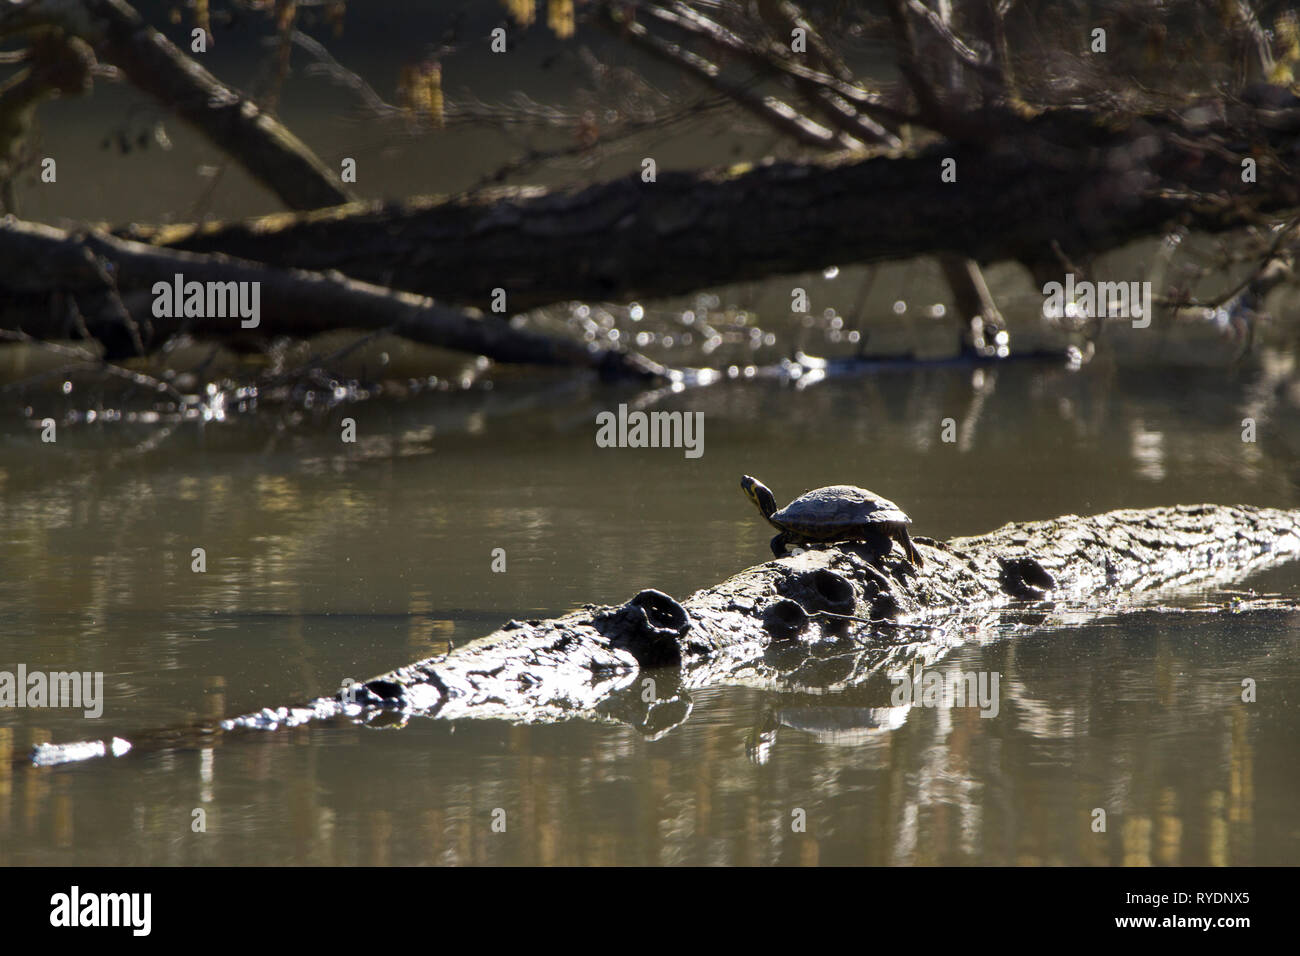 Terrapin in sunny spot resting on a log in lake in winter sun. High contrast but clearly see terrapin with head raised and about to dive in the water. - Stock Image